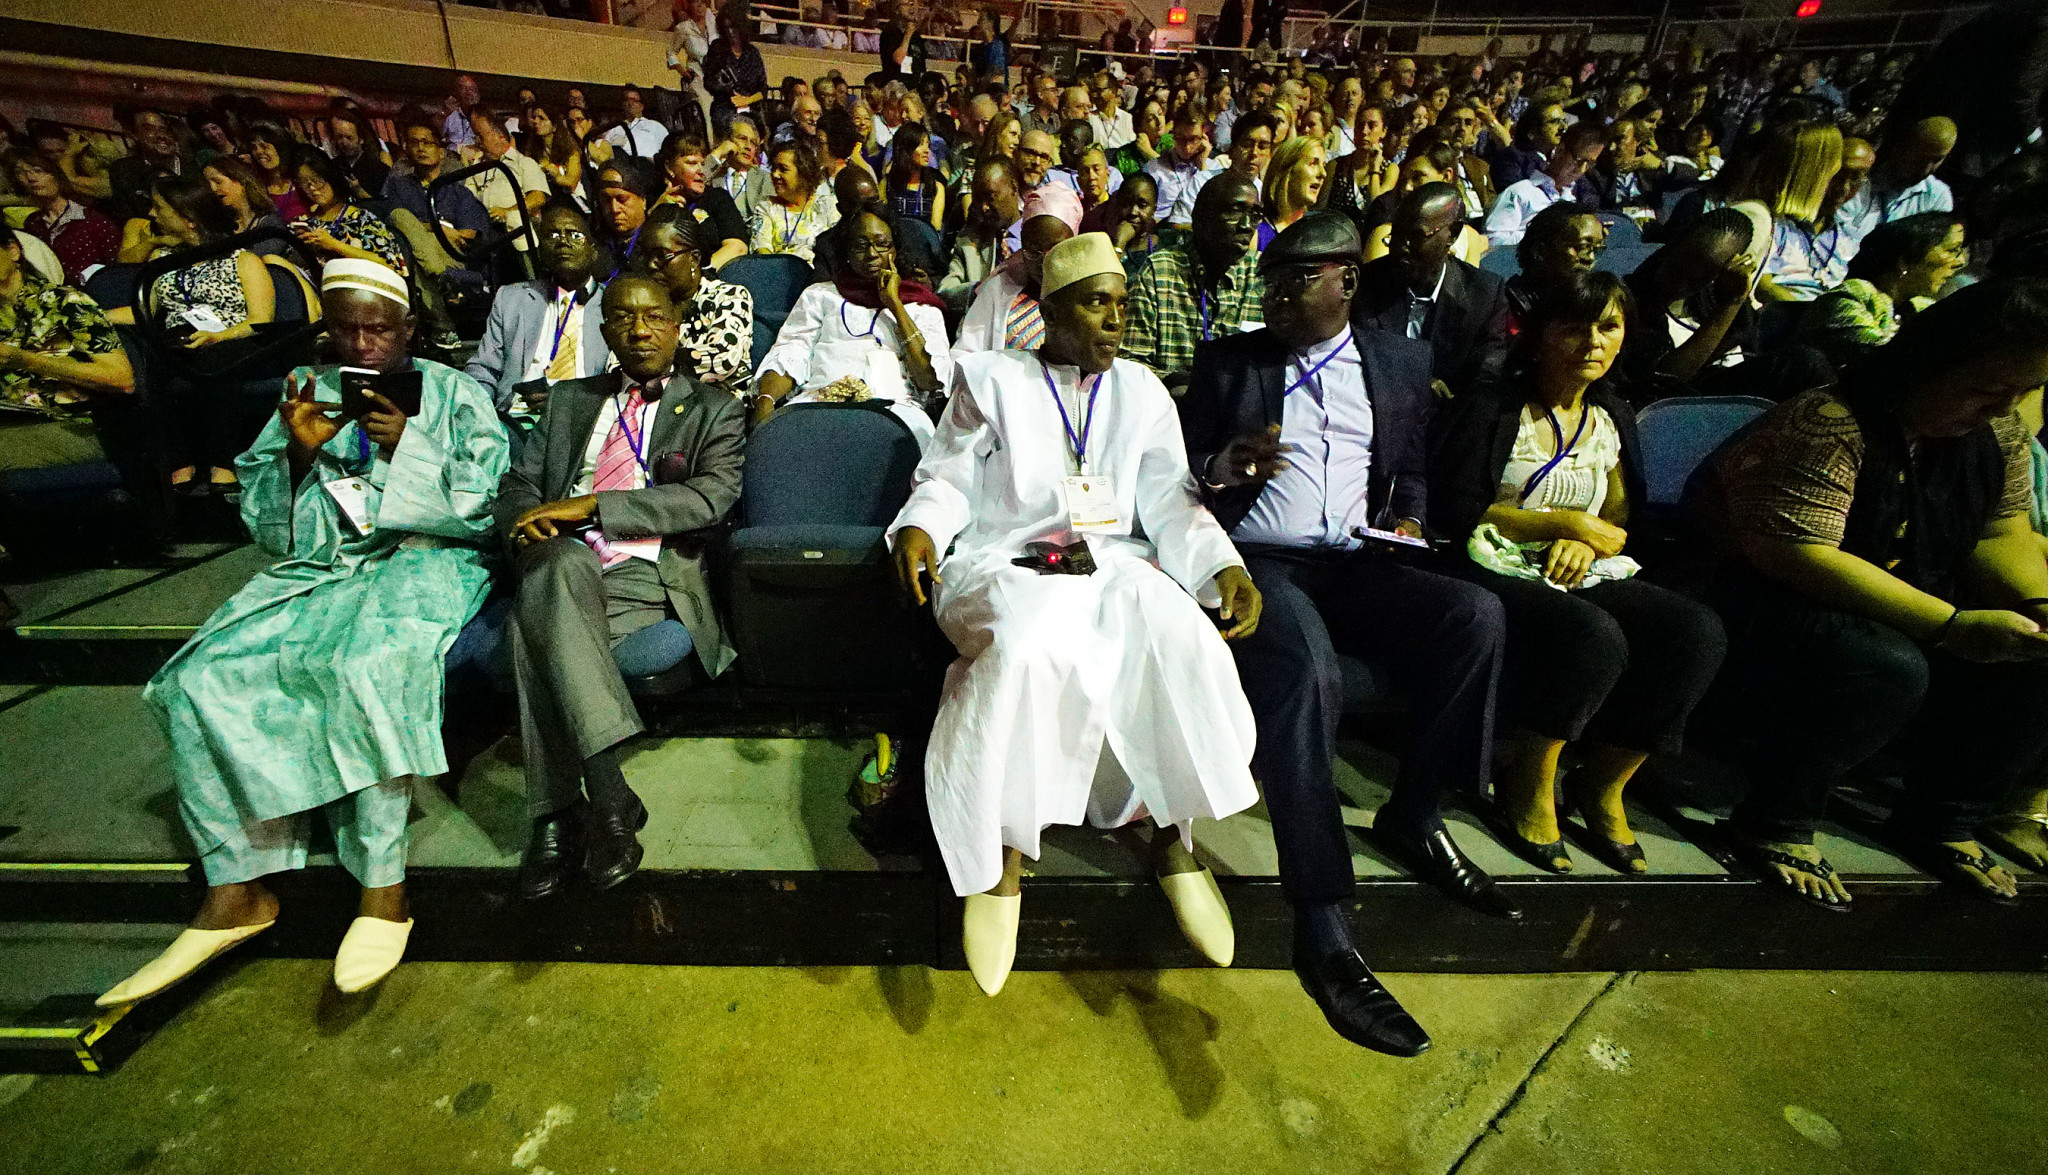 <p>World Conservation Congress delegates with front-row seats relaxed before the ceremonies began.</p>